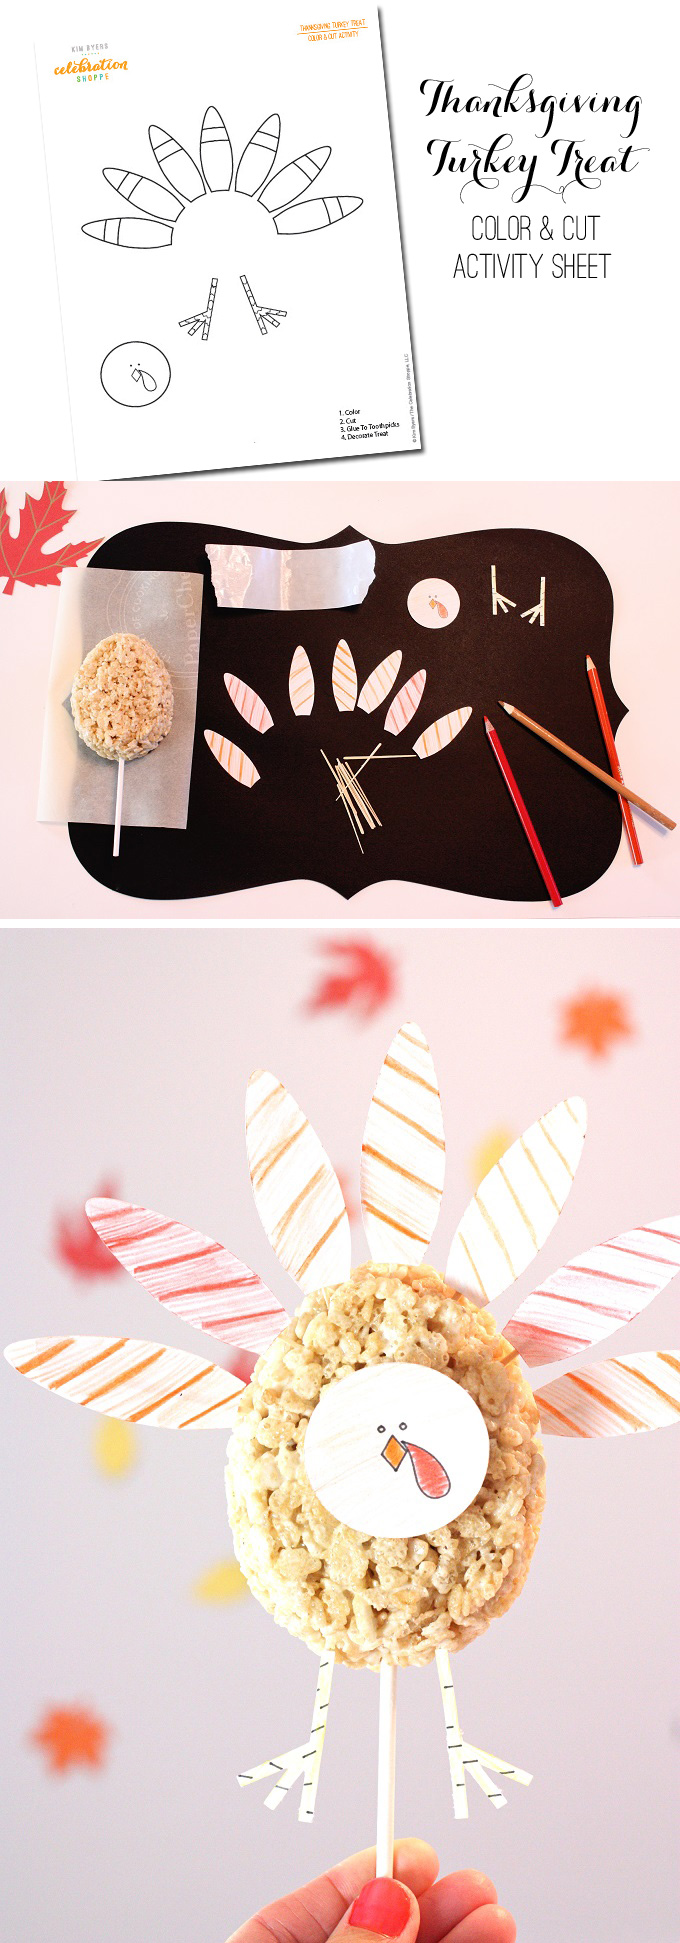 Thanksgiving Kids' Table Activities and Turkey Treats